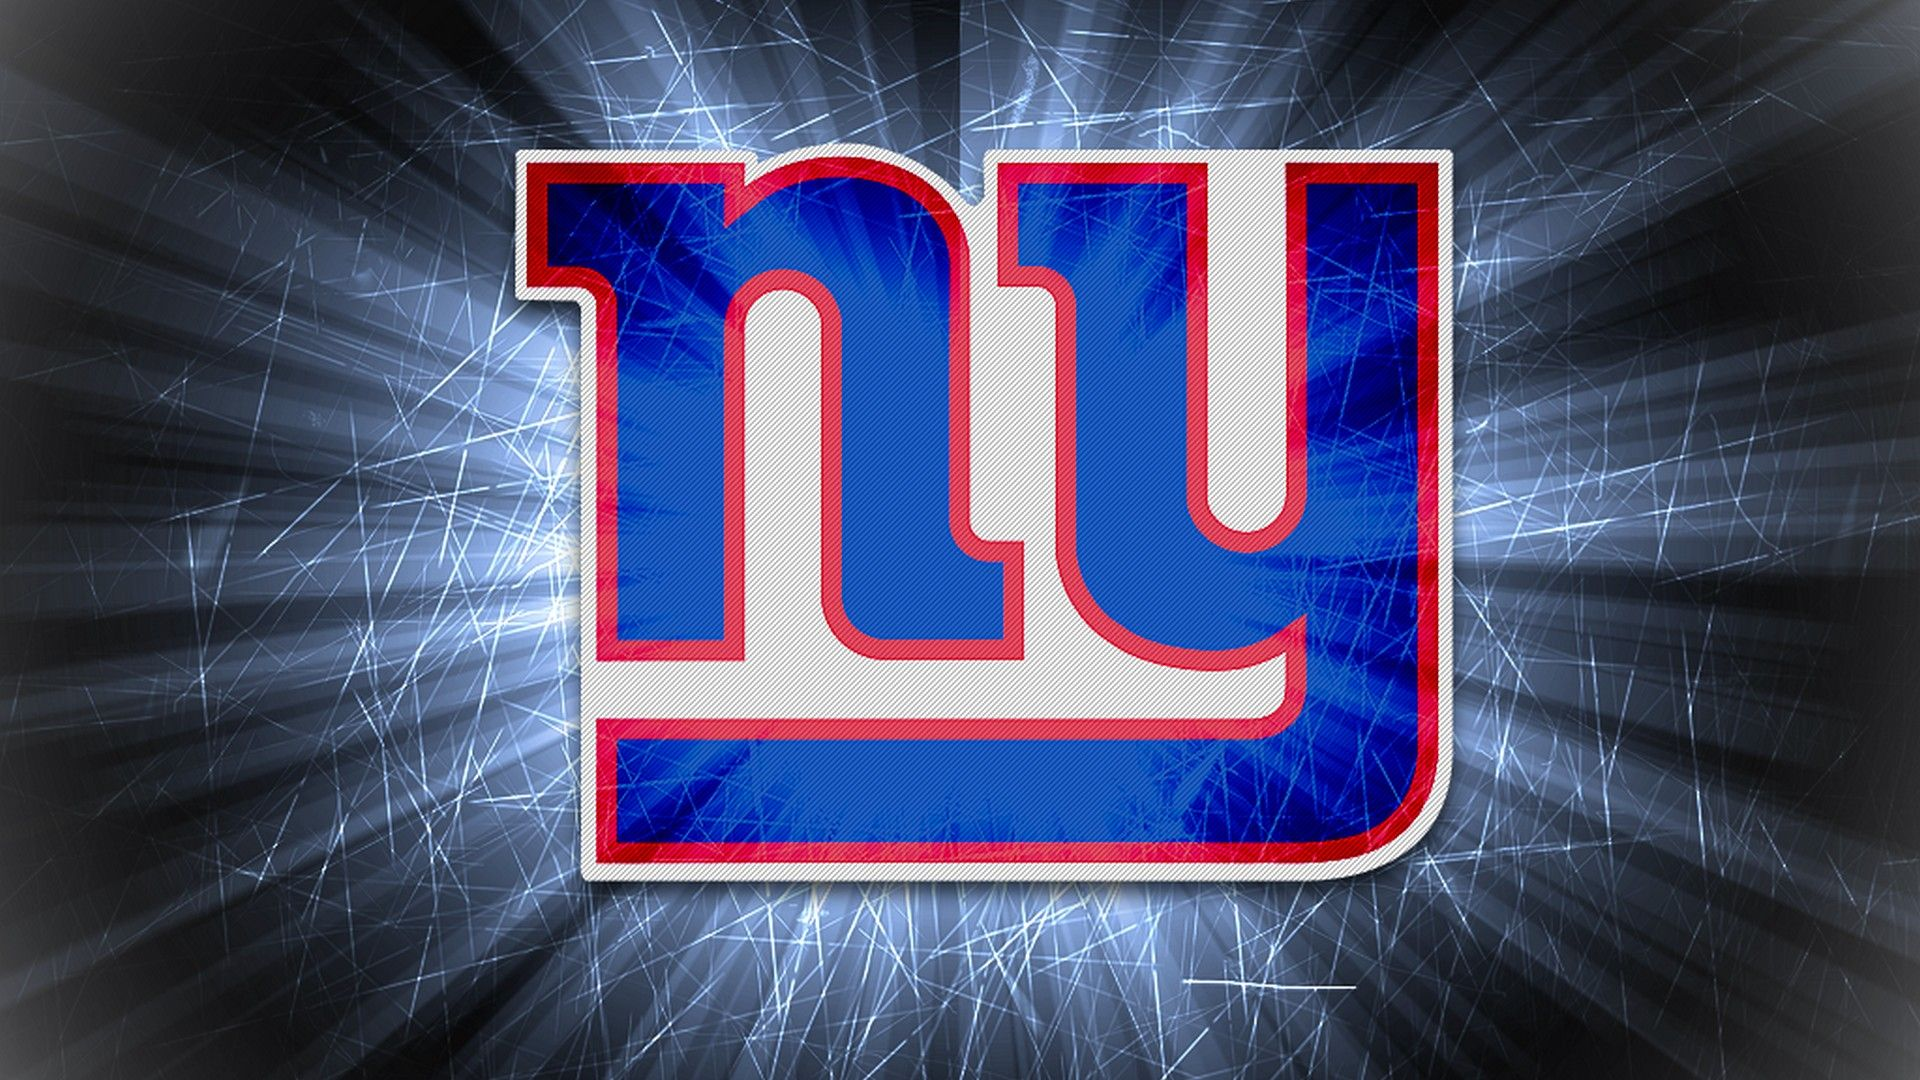 New York Giants Hd Wallpapers 2021 Nfl Football Wallpapers New York Giants New York Giants Logo Ny Giants Football